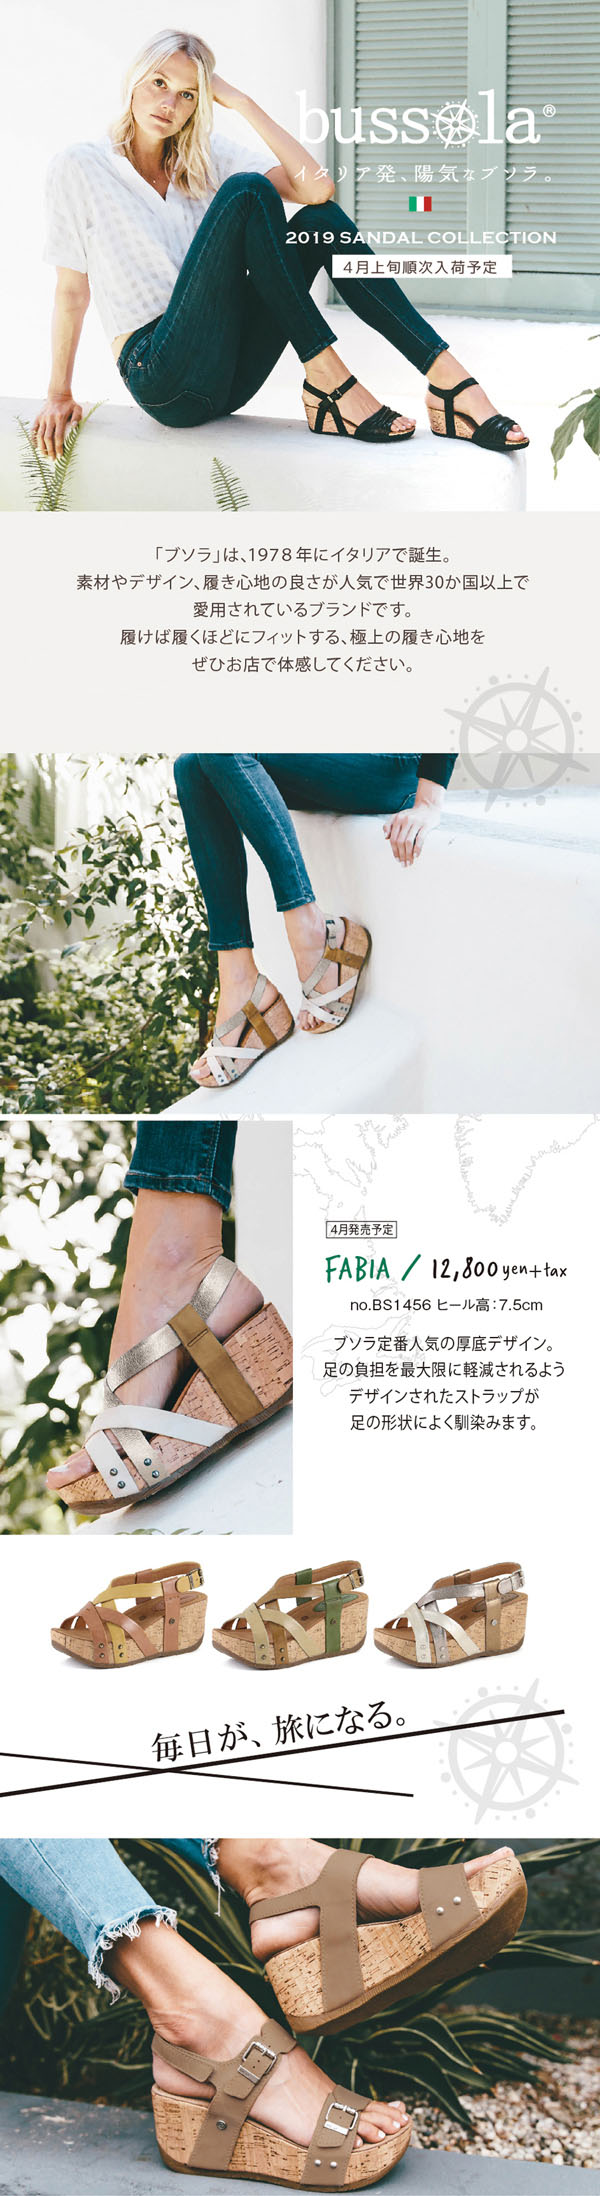 bussola(ブソラ)2019SS sandal collection